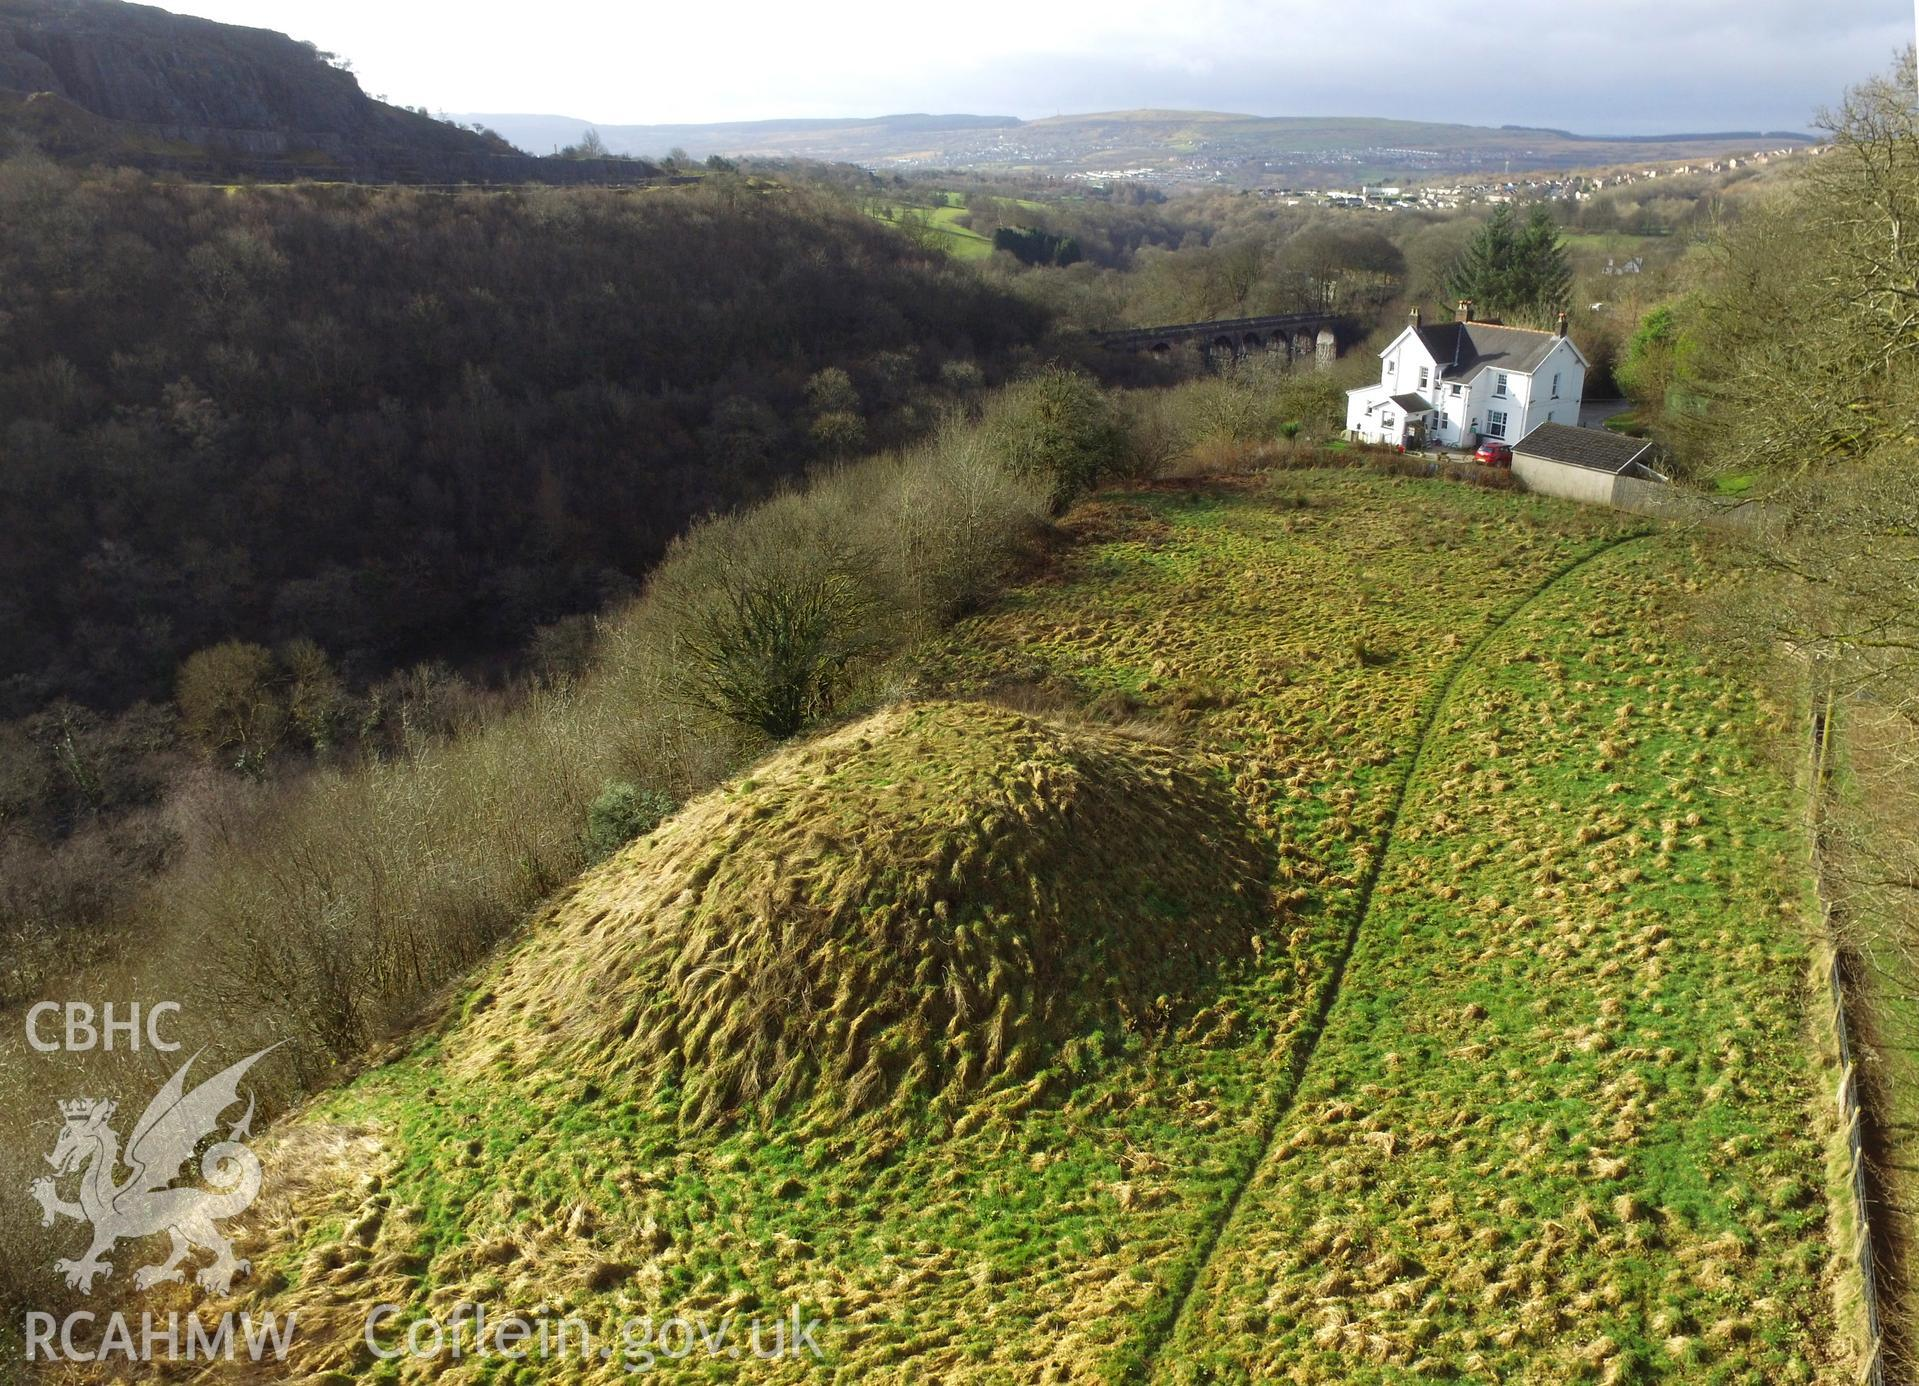 Colour photo showing mound at Cae Burdydd, produced by  Paul R. Davis,  4th February 2017.